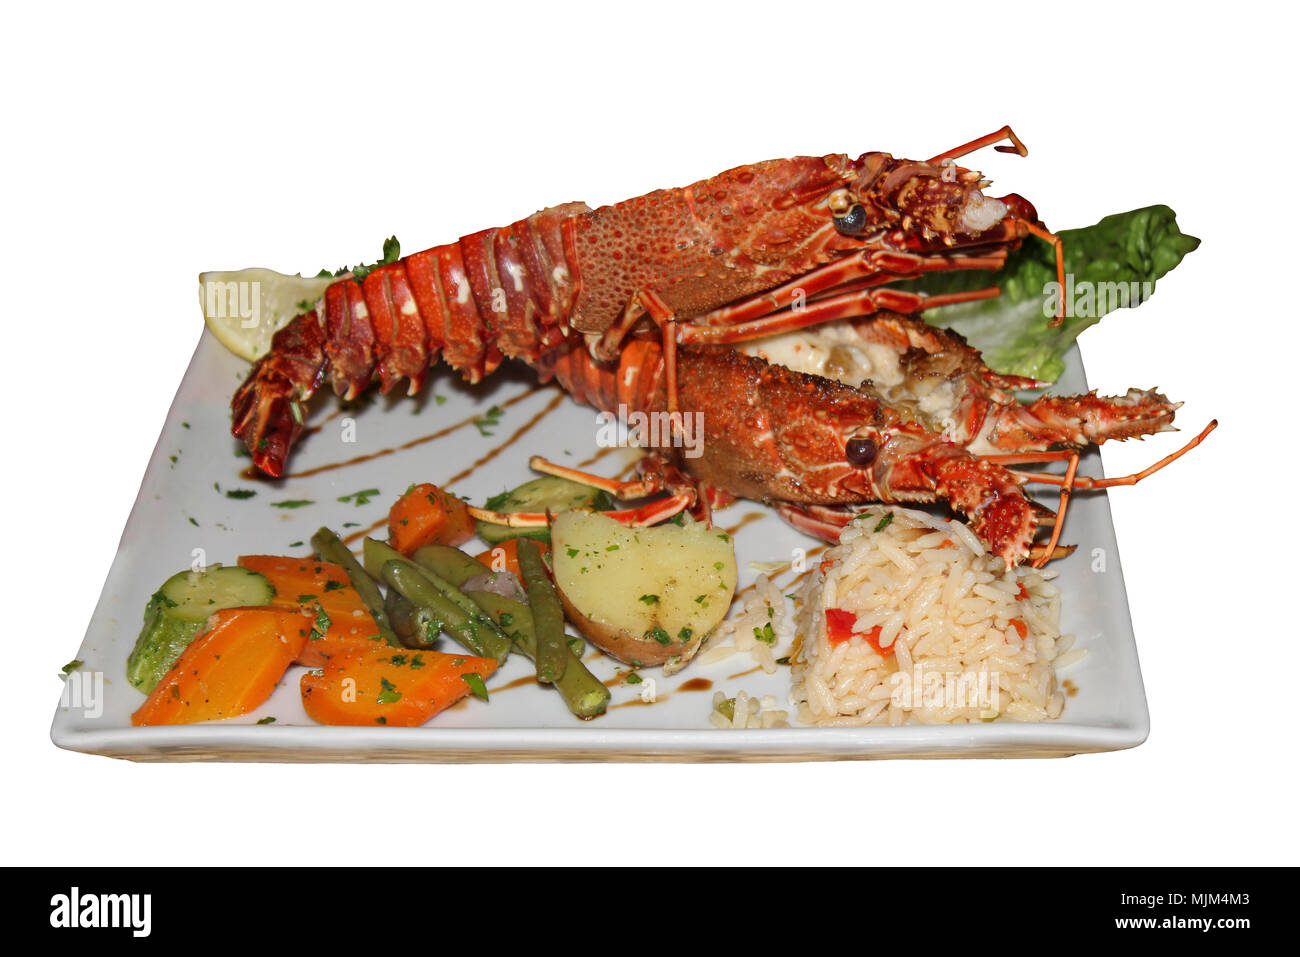 Moroccan Langoustine Meal - Stock Image